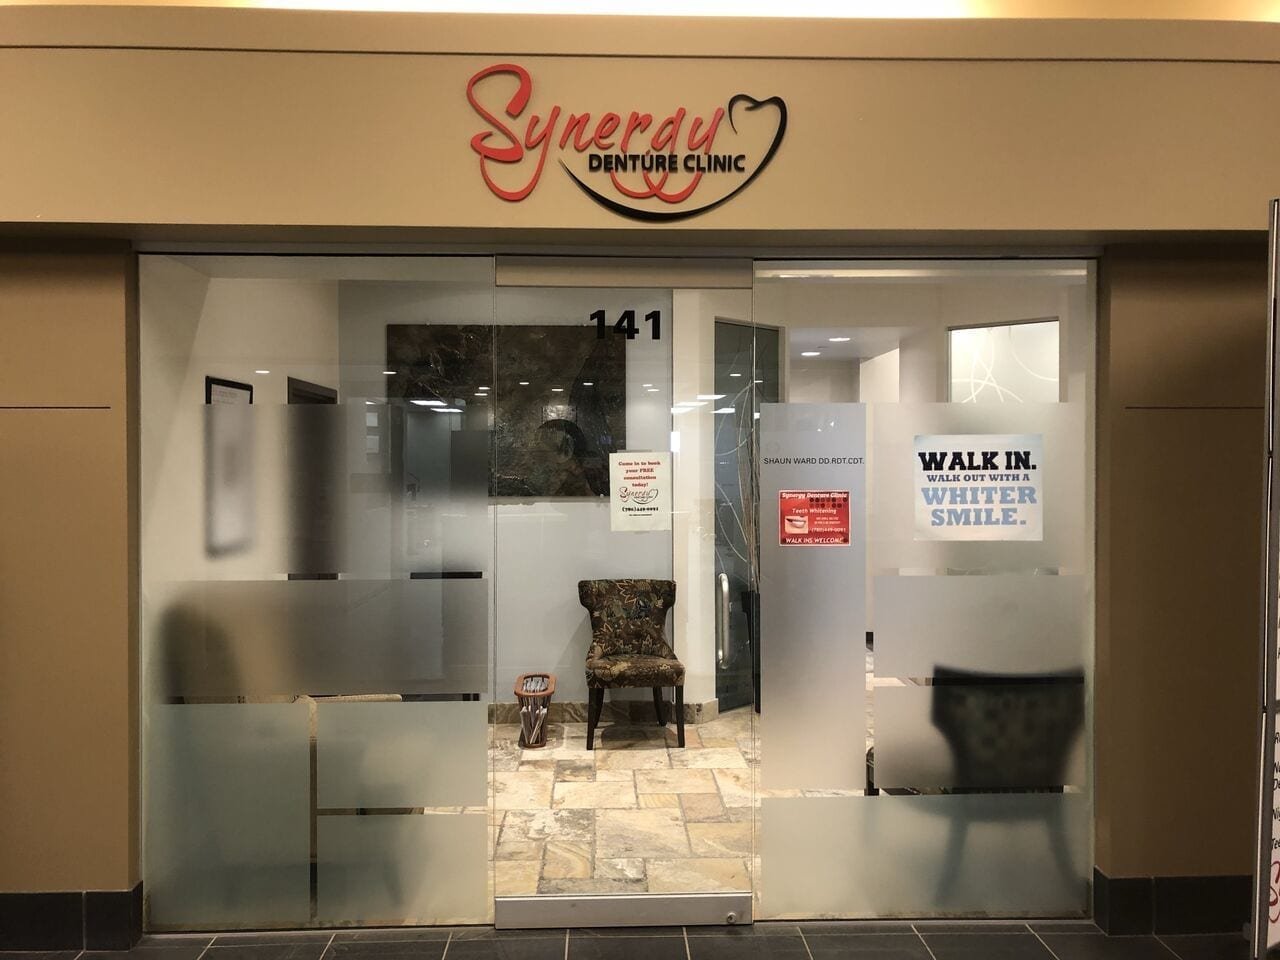 Synergy Denture Clinic storefront